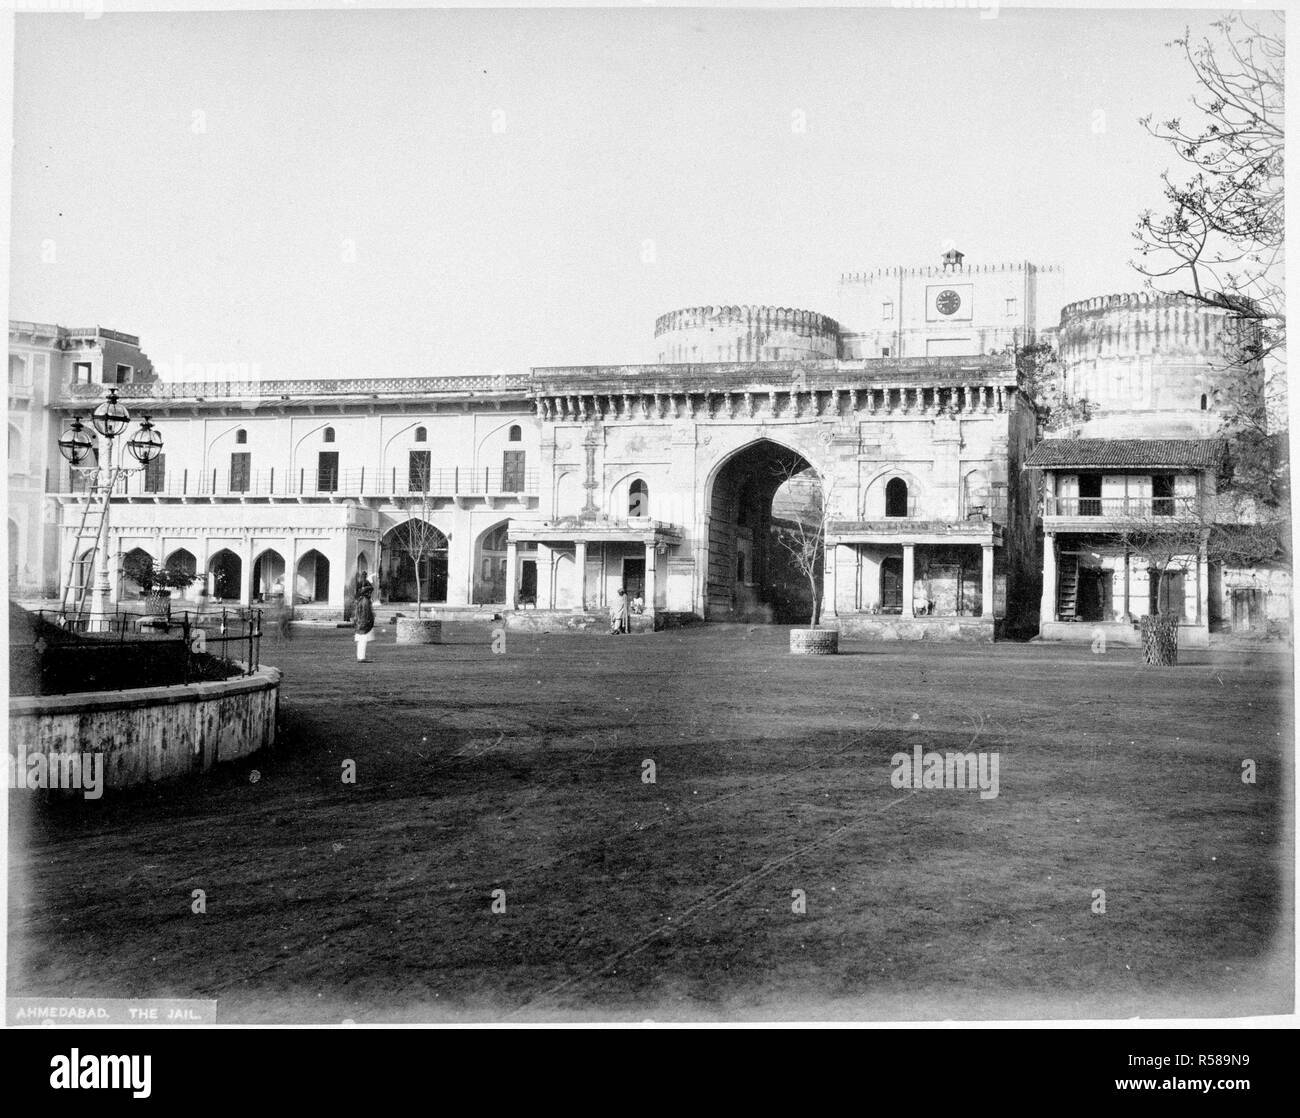 Ahmedabad Jail. Album of views in India and the Middle East. 1870s. Source: Photo 406/1/(26). Author: ANON. - Stock Image